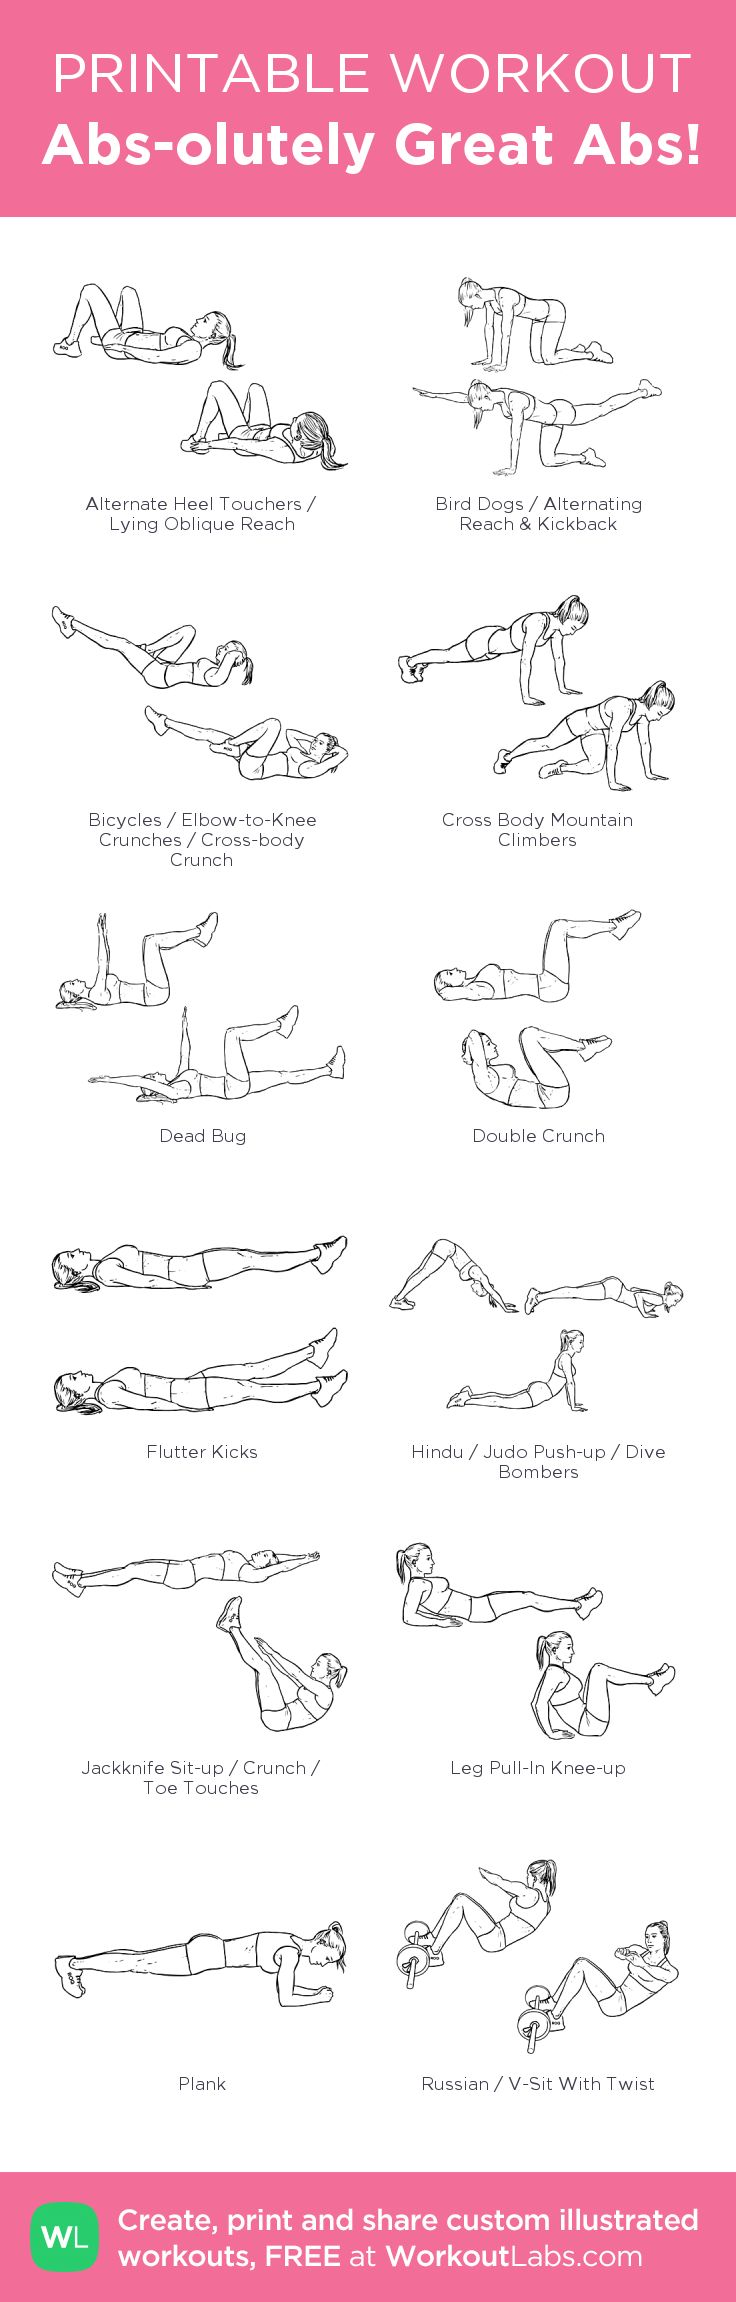 Abs-olutely Great Abs! – Custom workout created at http://WorkoutLabs.com • Click through to download as printable PDF! #customworkout